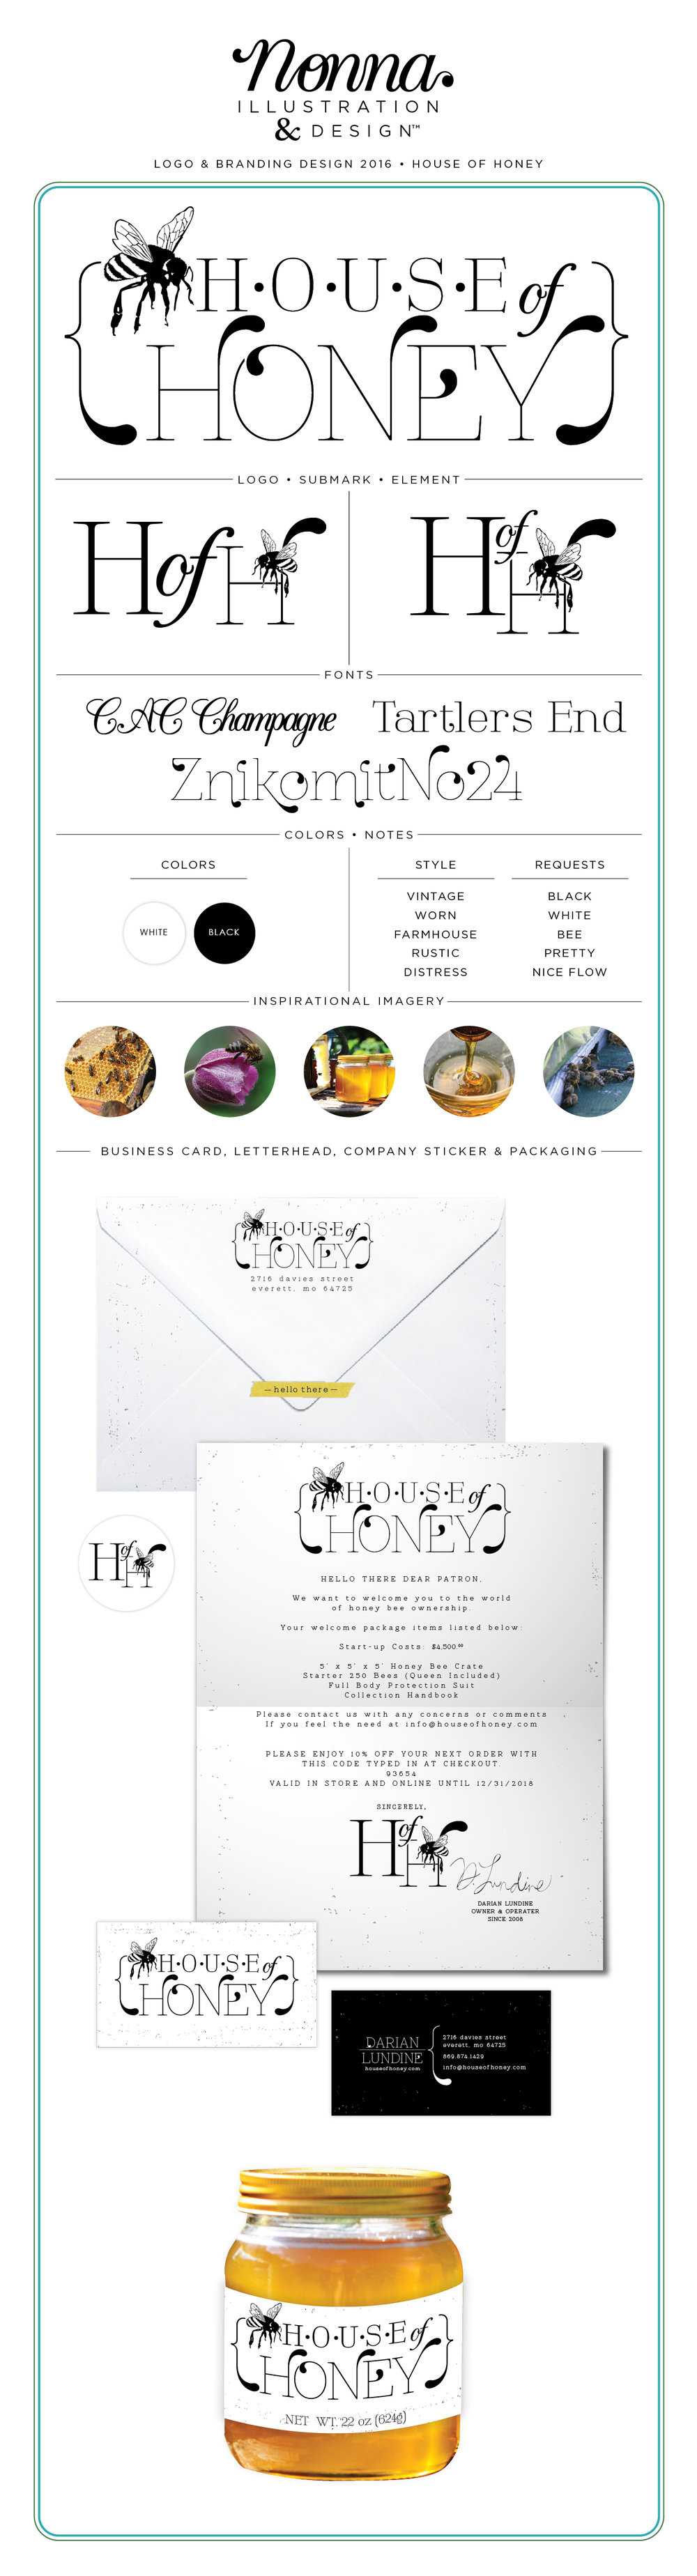 Branding Design Board House of Honey